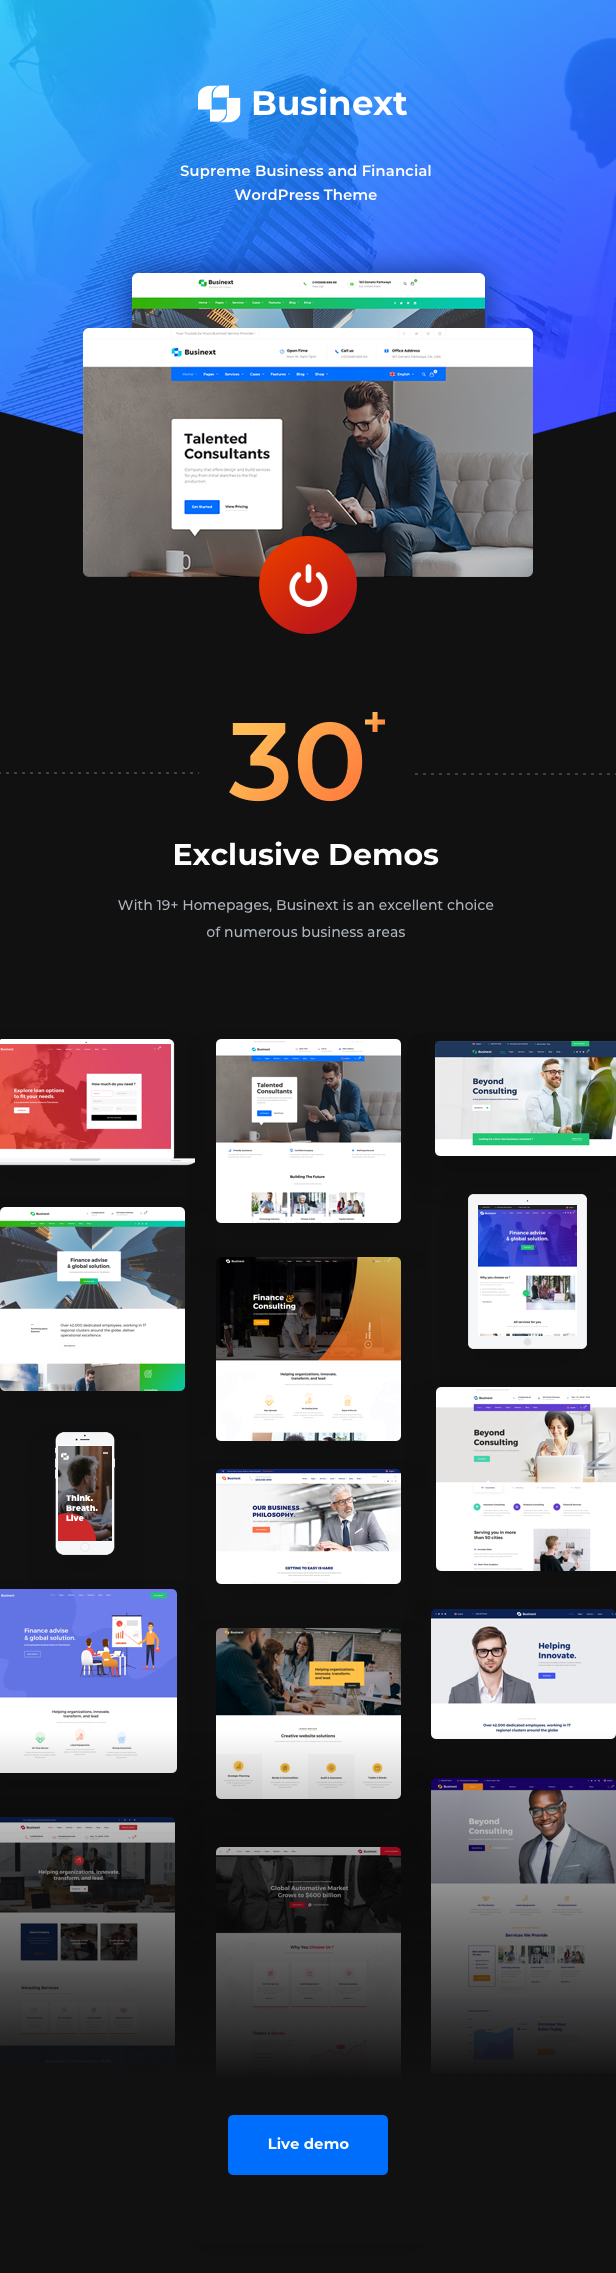 Business Financial Institution WordPress Theme - 32+ Superb Homepages